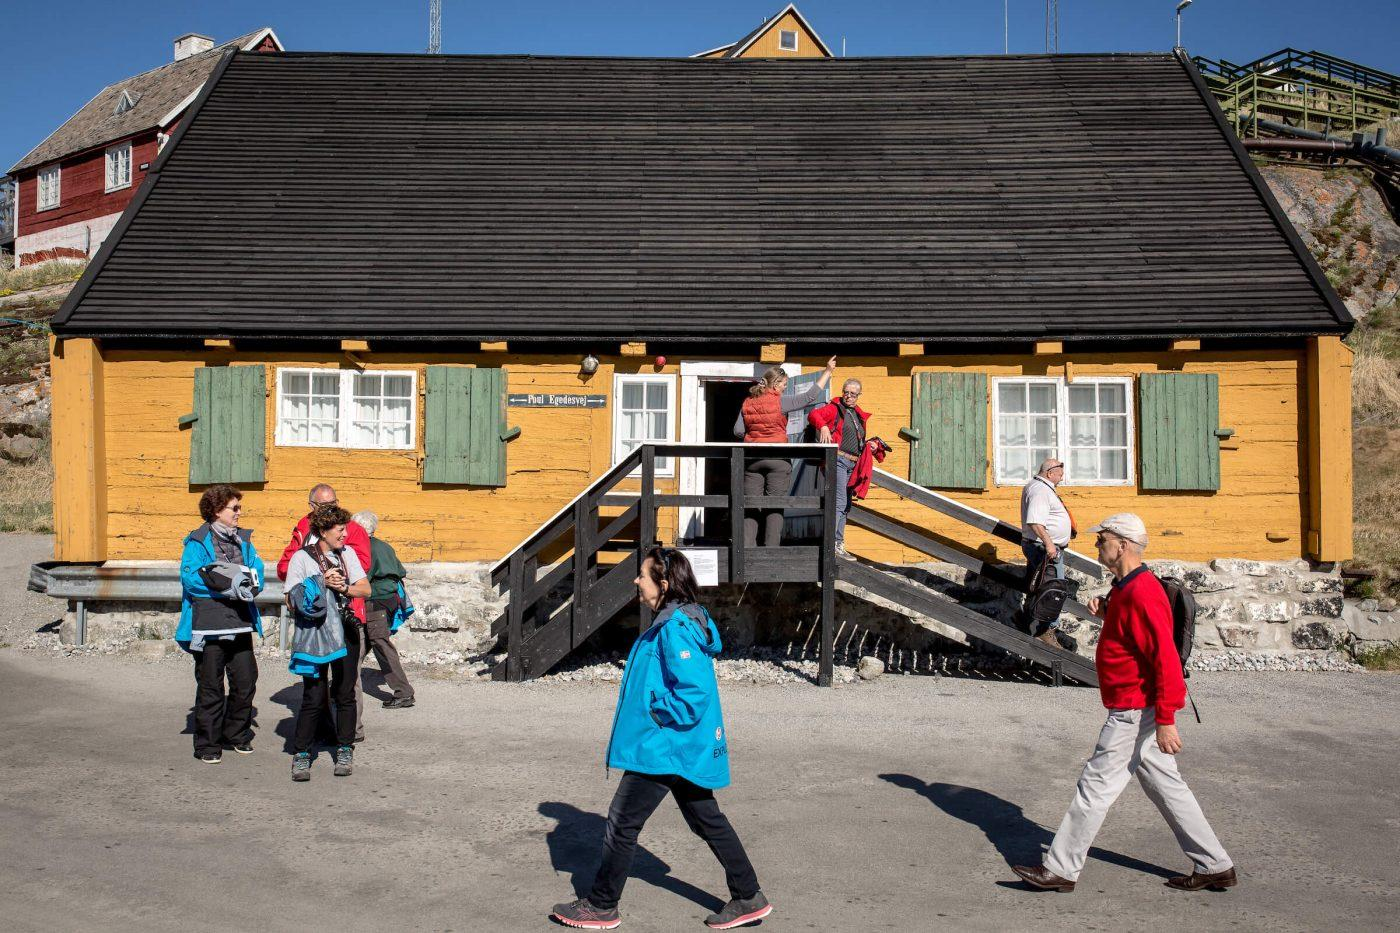 One of the buildings at Qasigiannguit Museum in Greenland. Photo by Mads Pihl - Visit Greenland